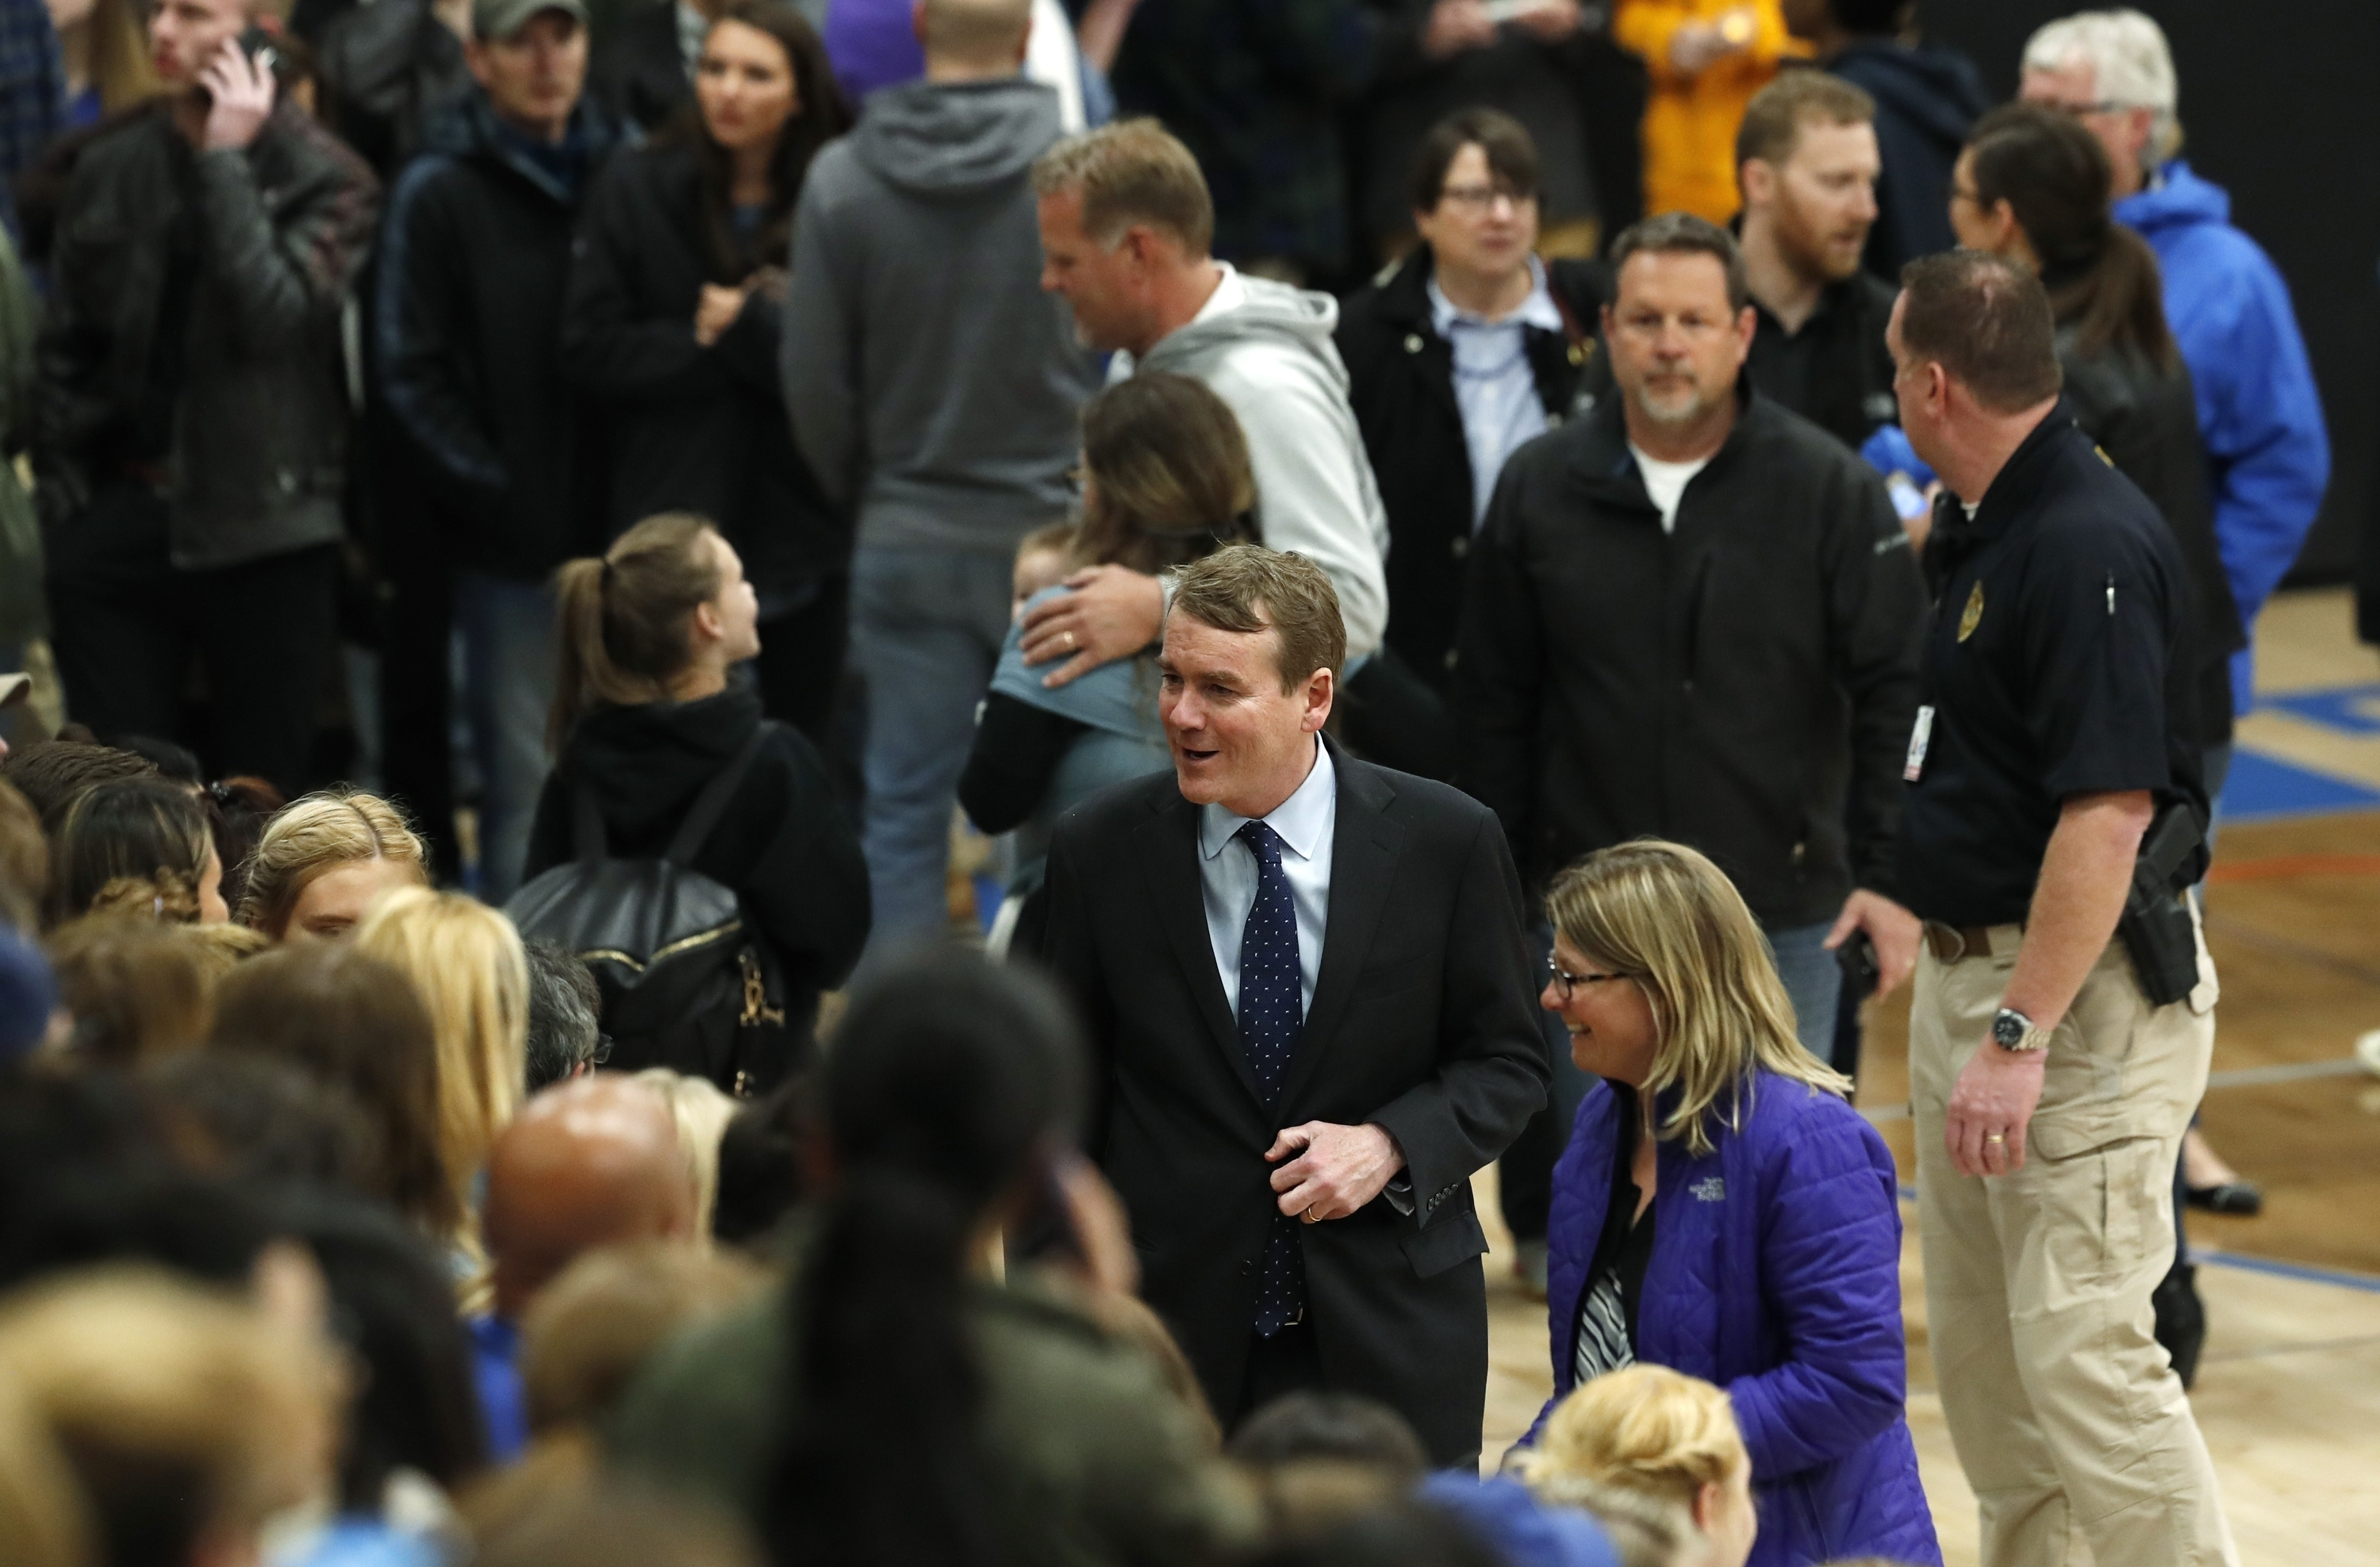 U.S. Sen. Michael Bennet, D-Colo., center, greets attendees during a community vigil to honor the victims and survivors of yesterday's fatal shooting at the STEM School Highlands Ranch, May 8, 2019, in Highlands Ranch, Colorado.